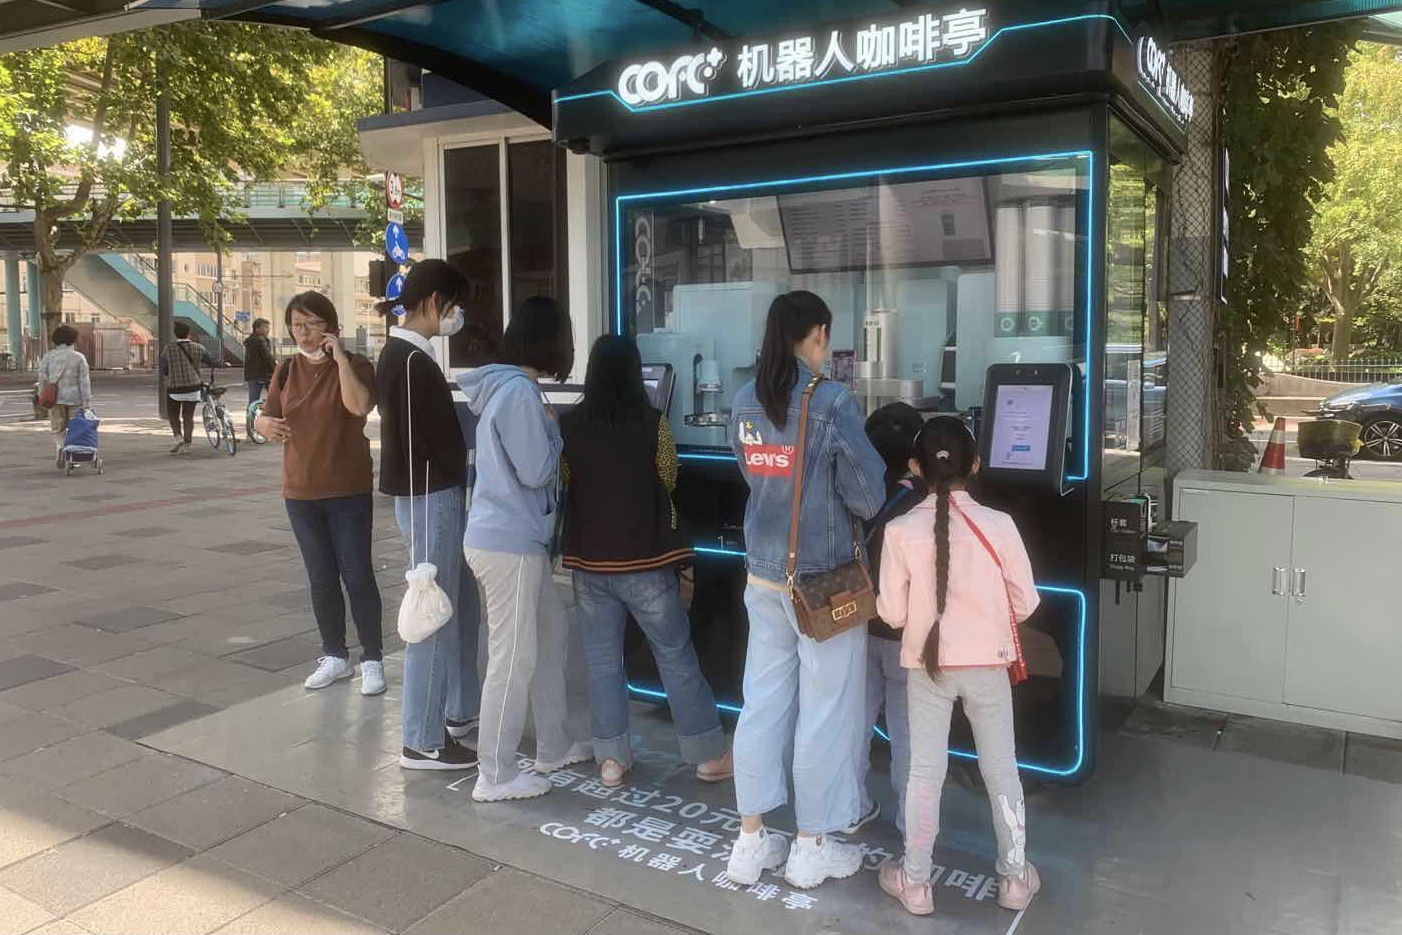 Starbucks temporarily closed many stores in New York, how far can intelligent coffee robots go?